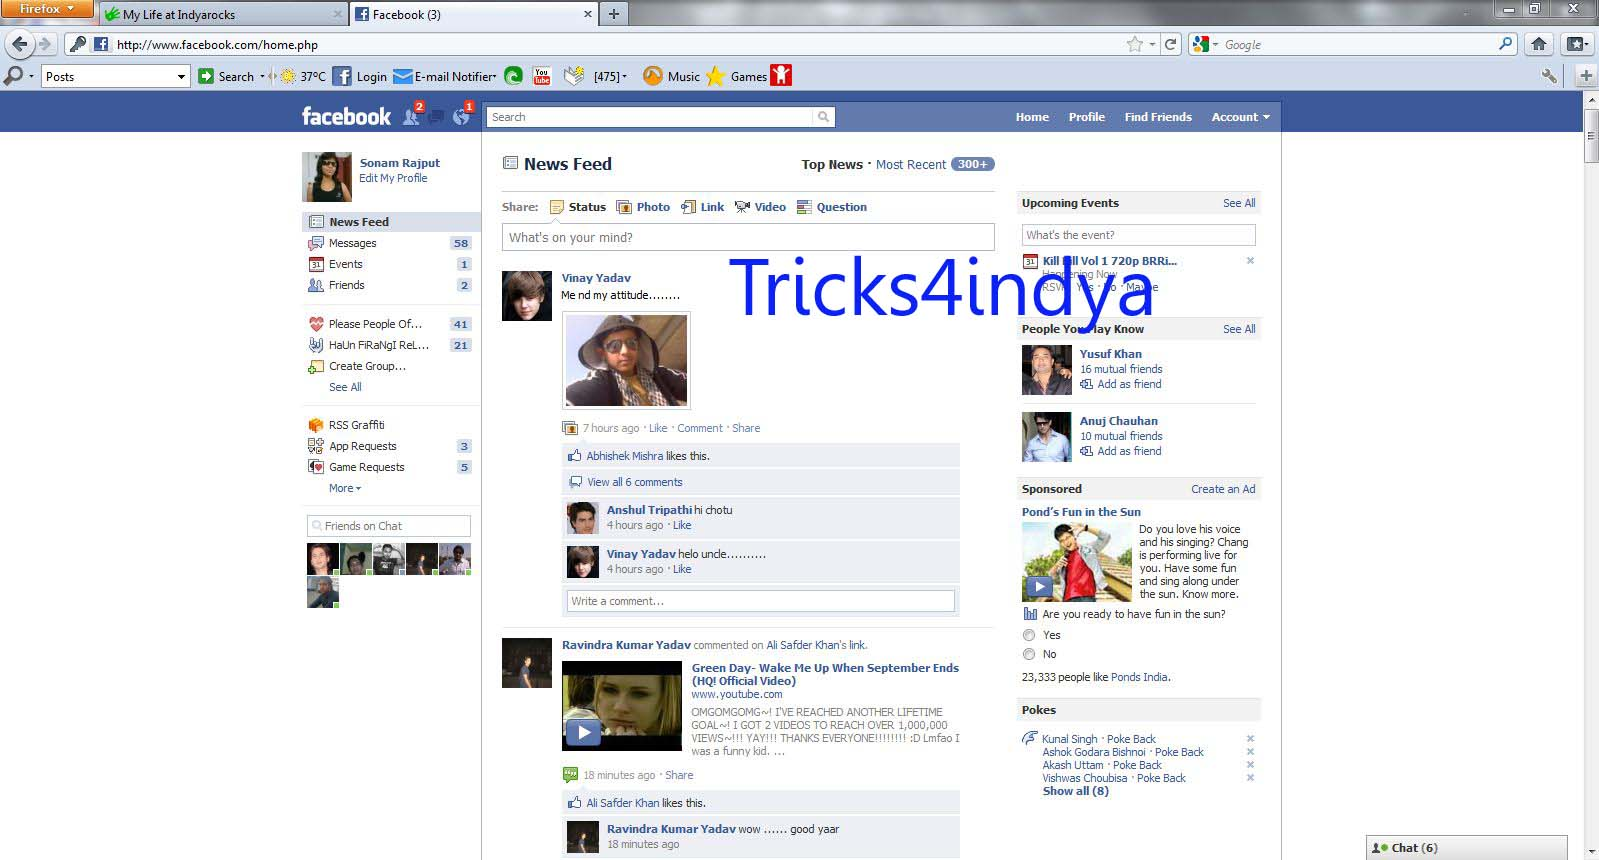 Facebook Hack: How to hack a Facebook Account - Cookie Stealing ...